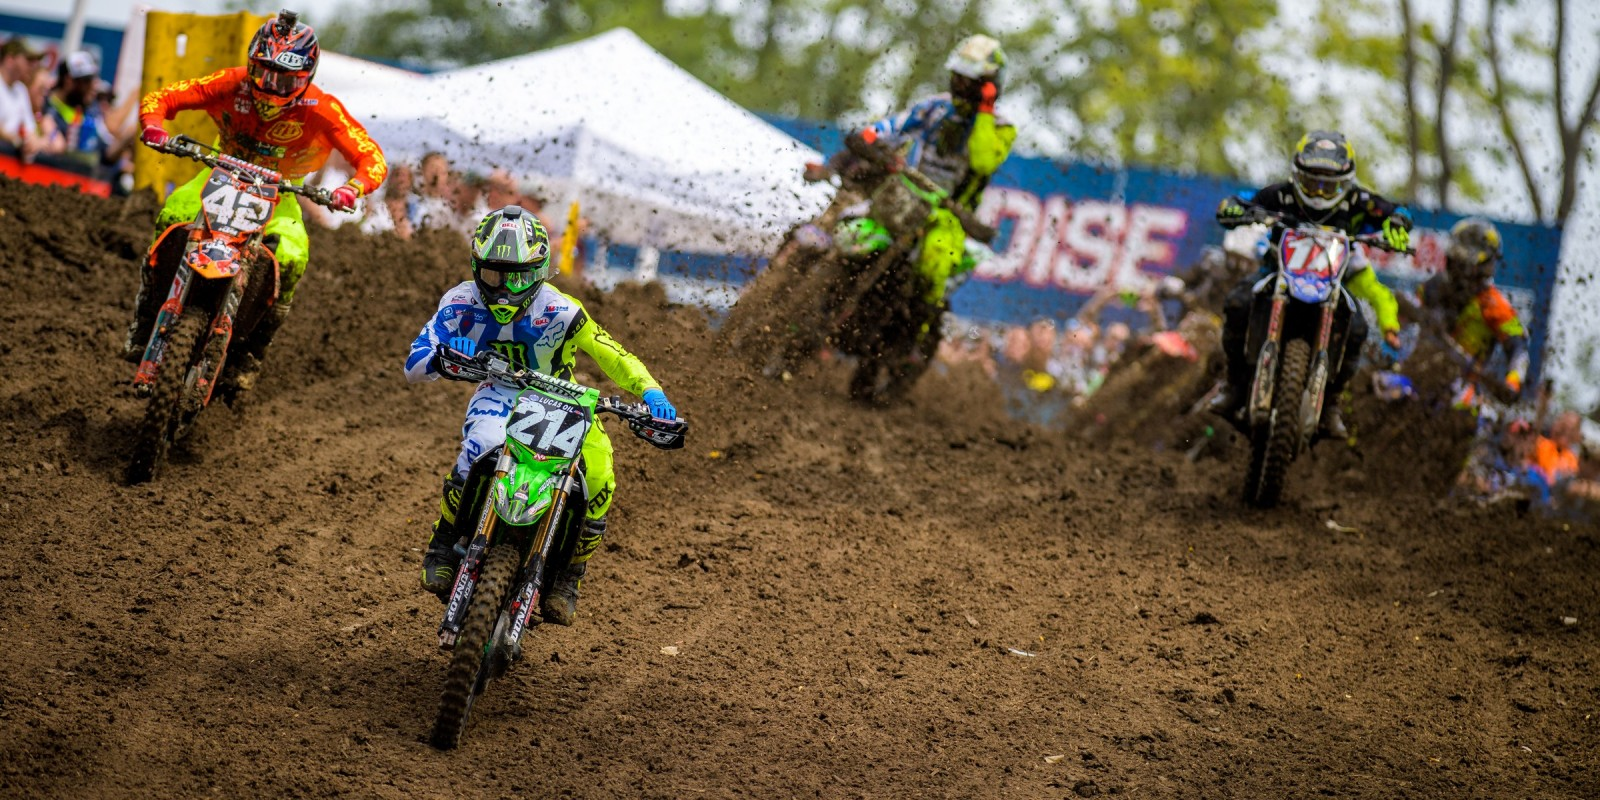 Austin Forkner during the 2016 Pro MX Nationals in Iron Man Raceway Crawfordsville, Indiana